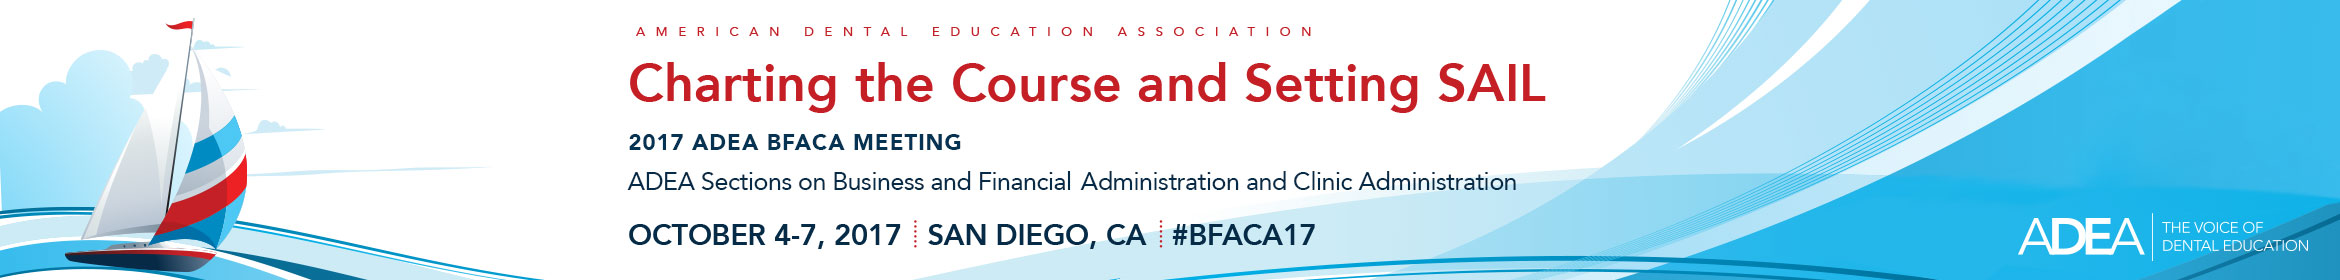 2017 ADEA Sections on Business and Financial Administration and Clinic Administration (ADEA BFACA) Meeting  Main banner